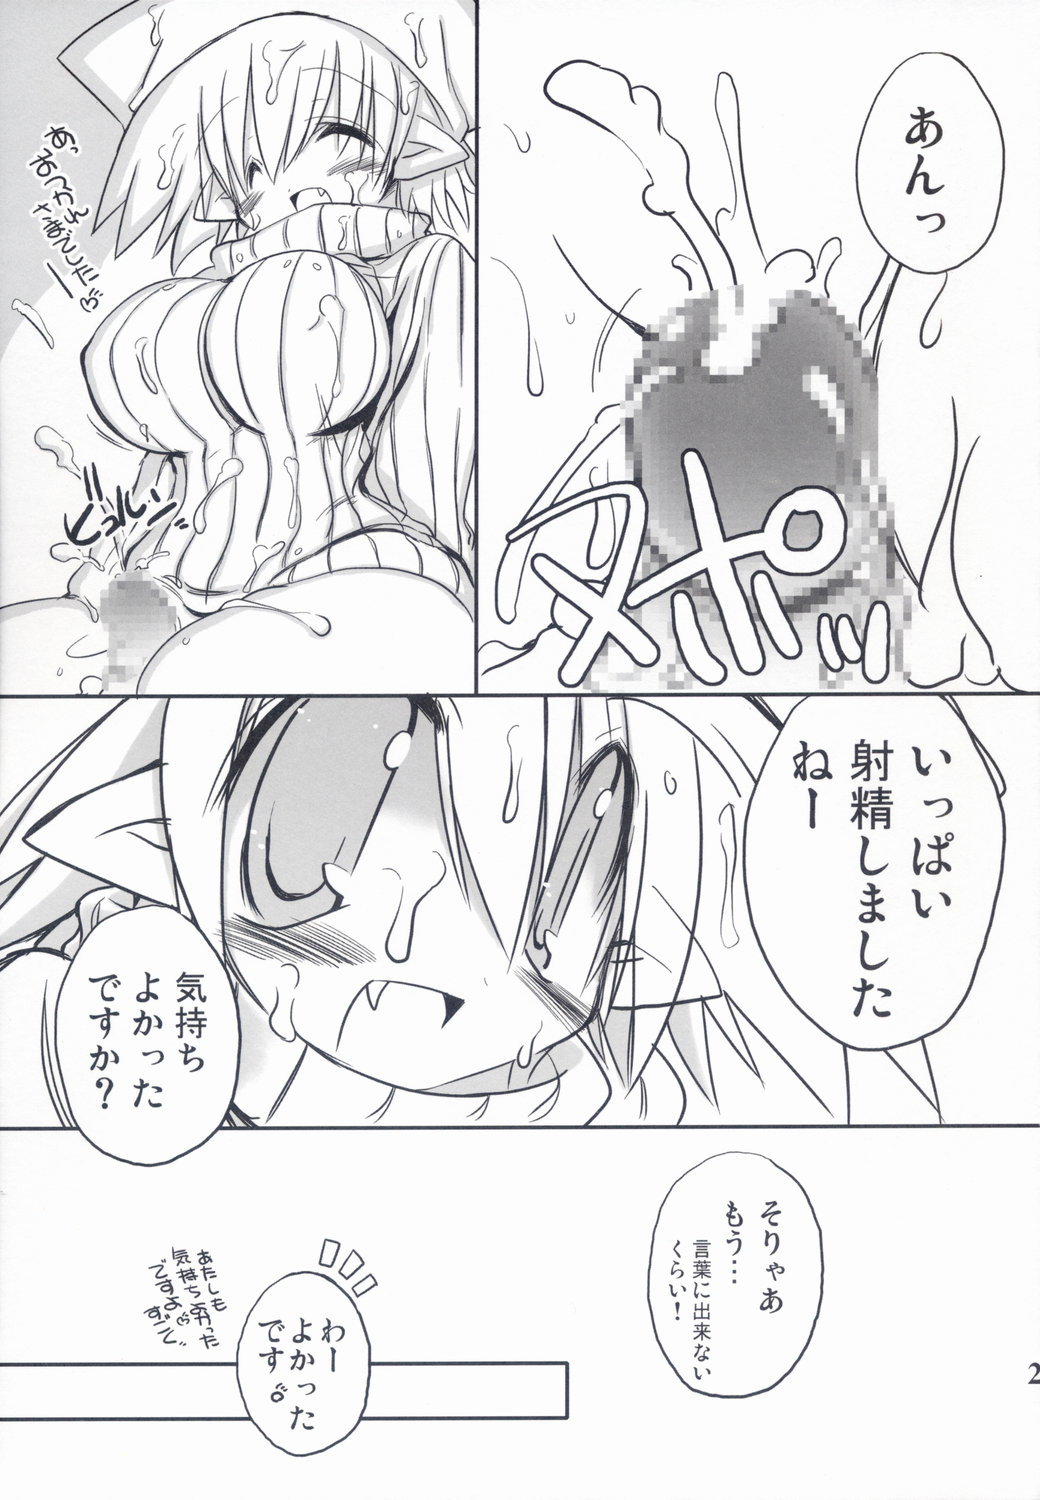 do have argonians breasts why Kiss x sis mikuni and keita